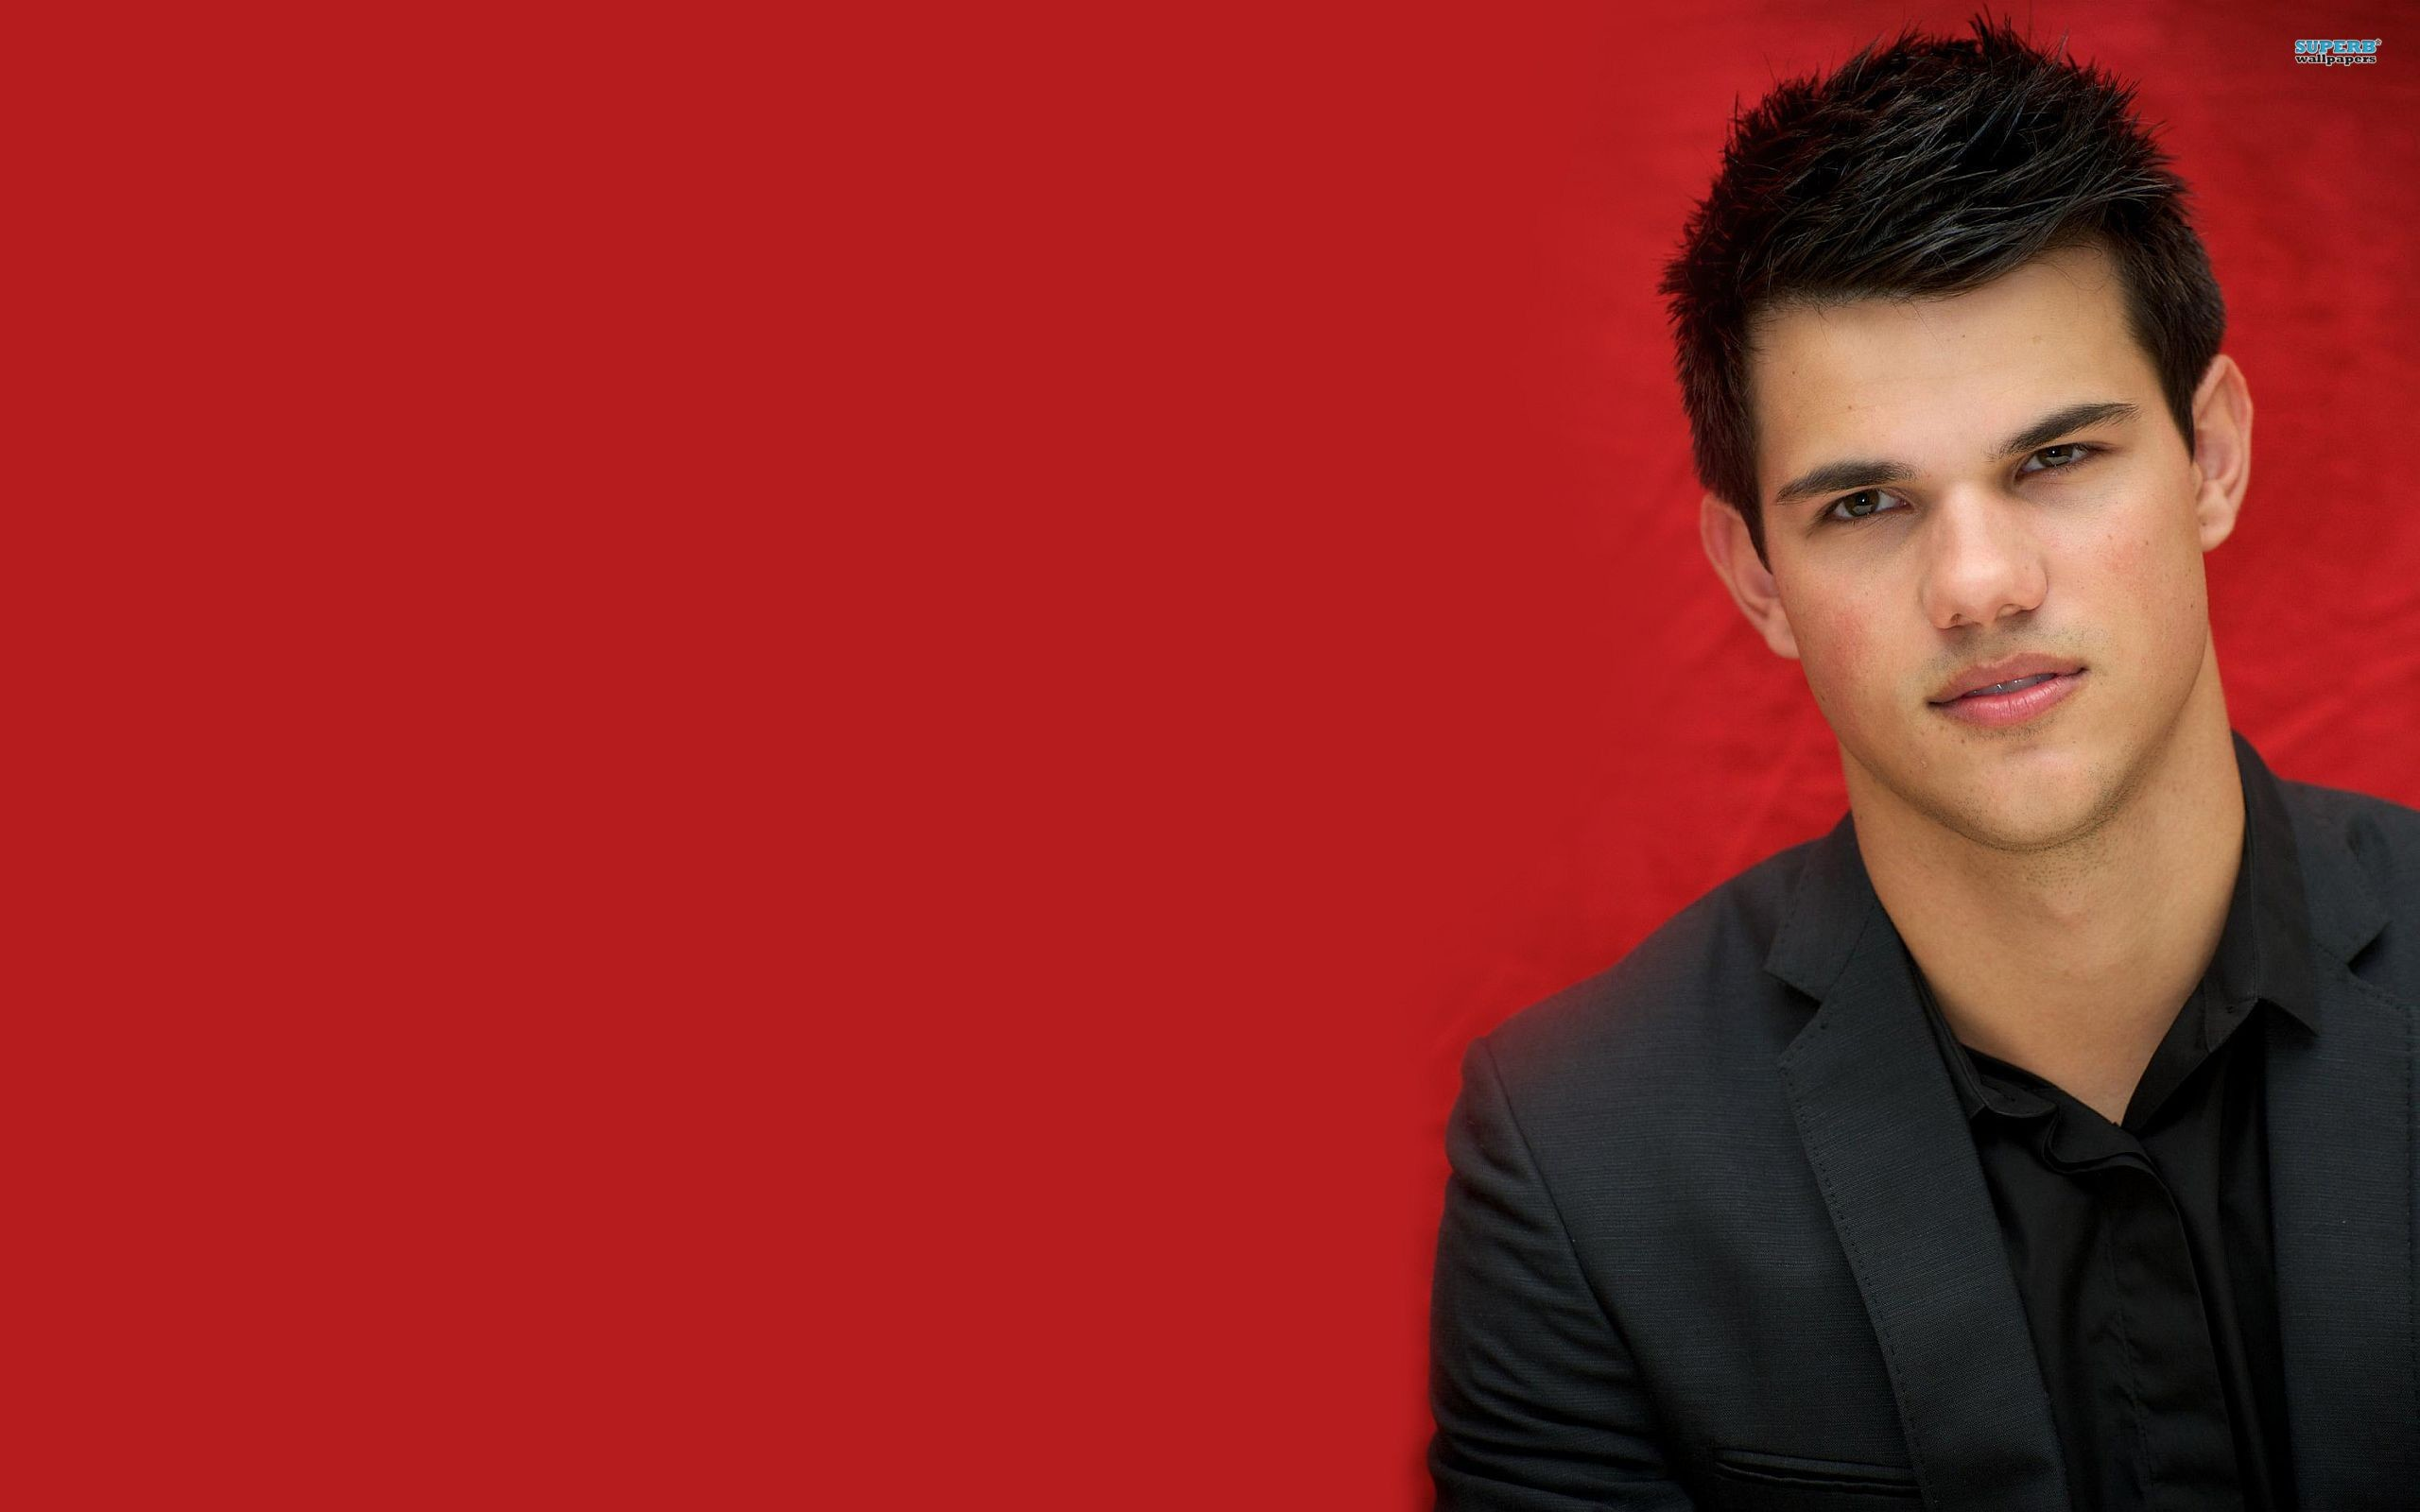 Taylor Lautner Wallpapers For Computer – Wallpaper Cave